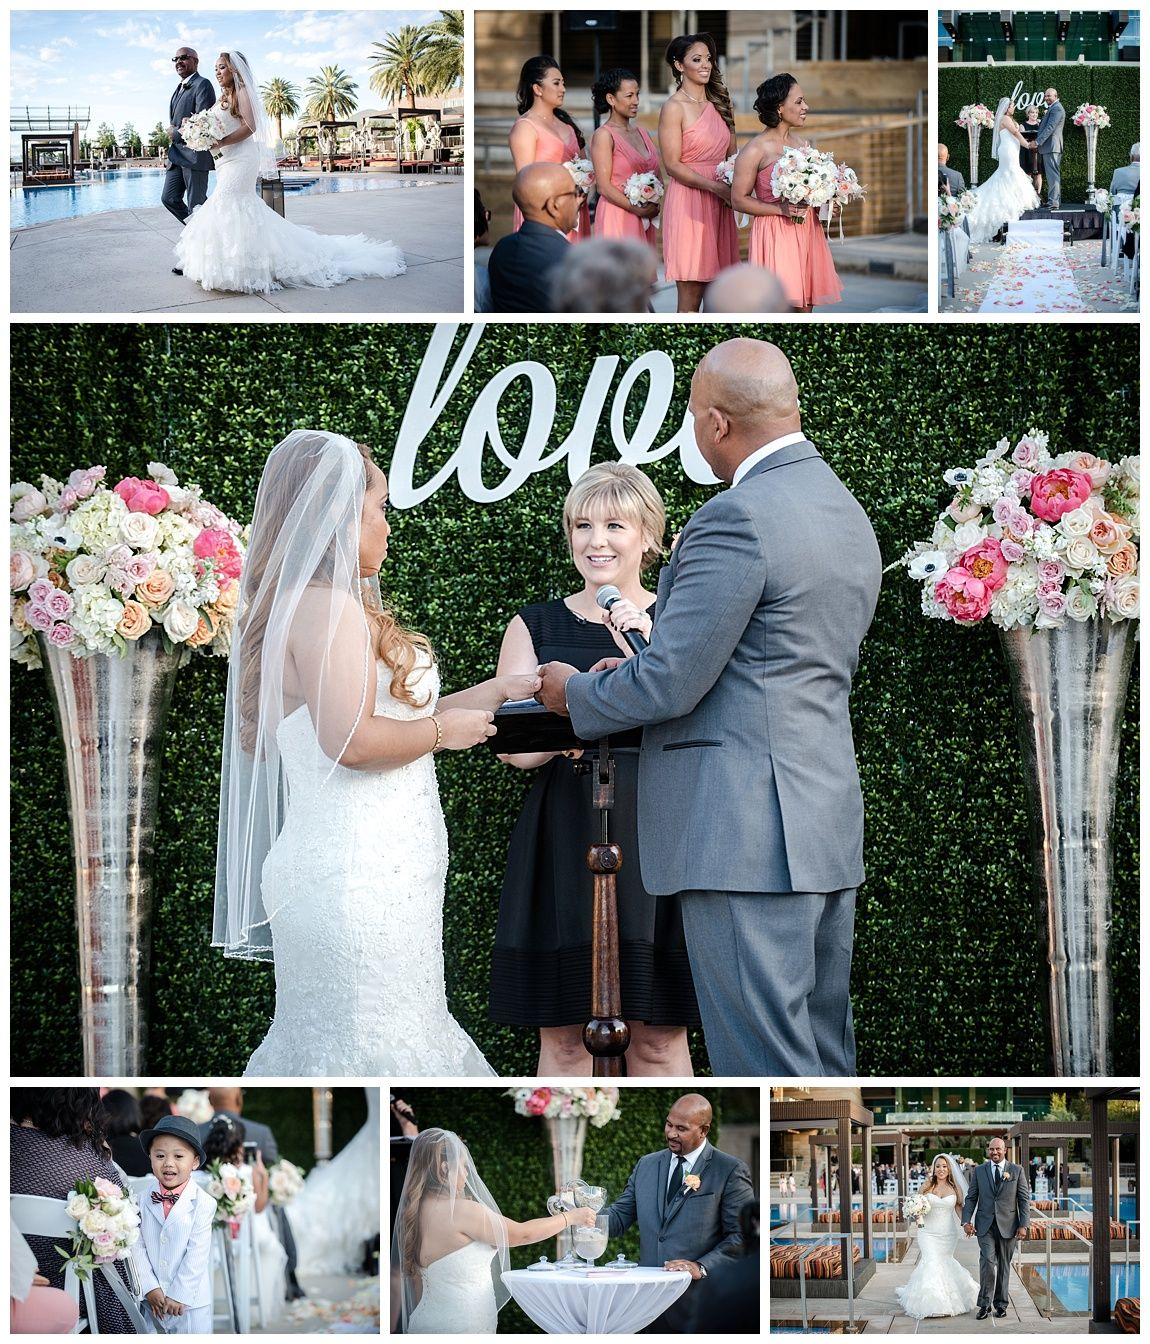 Las Vegas Wedding Planner, M Resort wedding, boxwood backdrop, coral and metallic wedding, coral bridesmaid dresses, sand ceremony